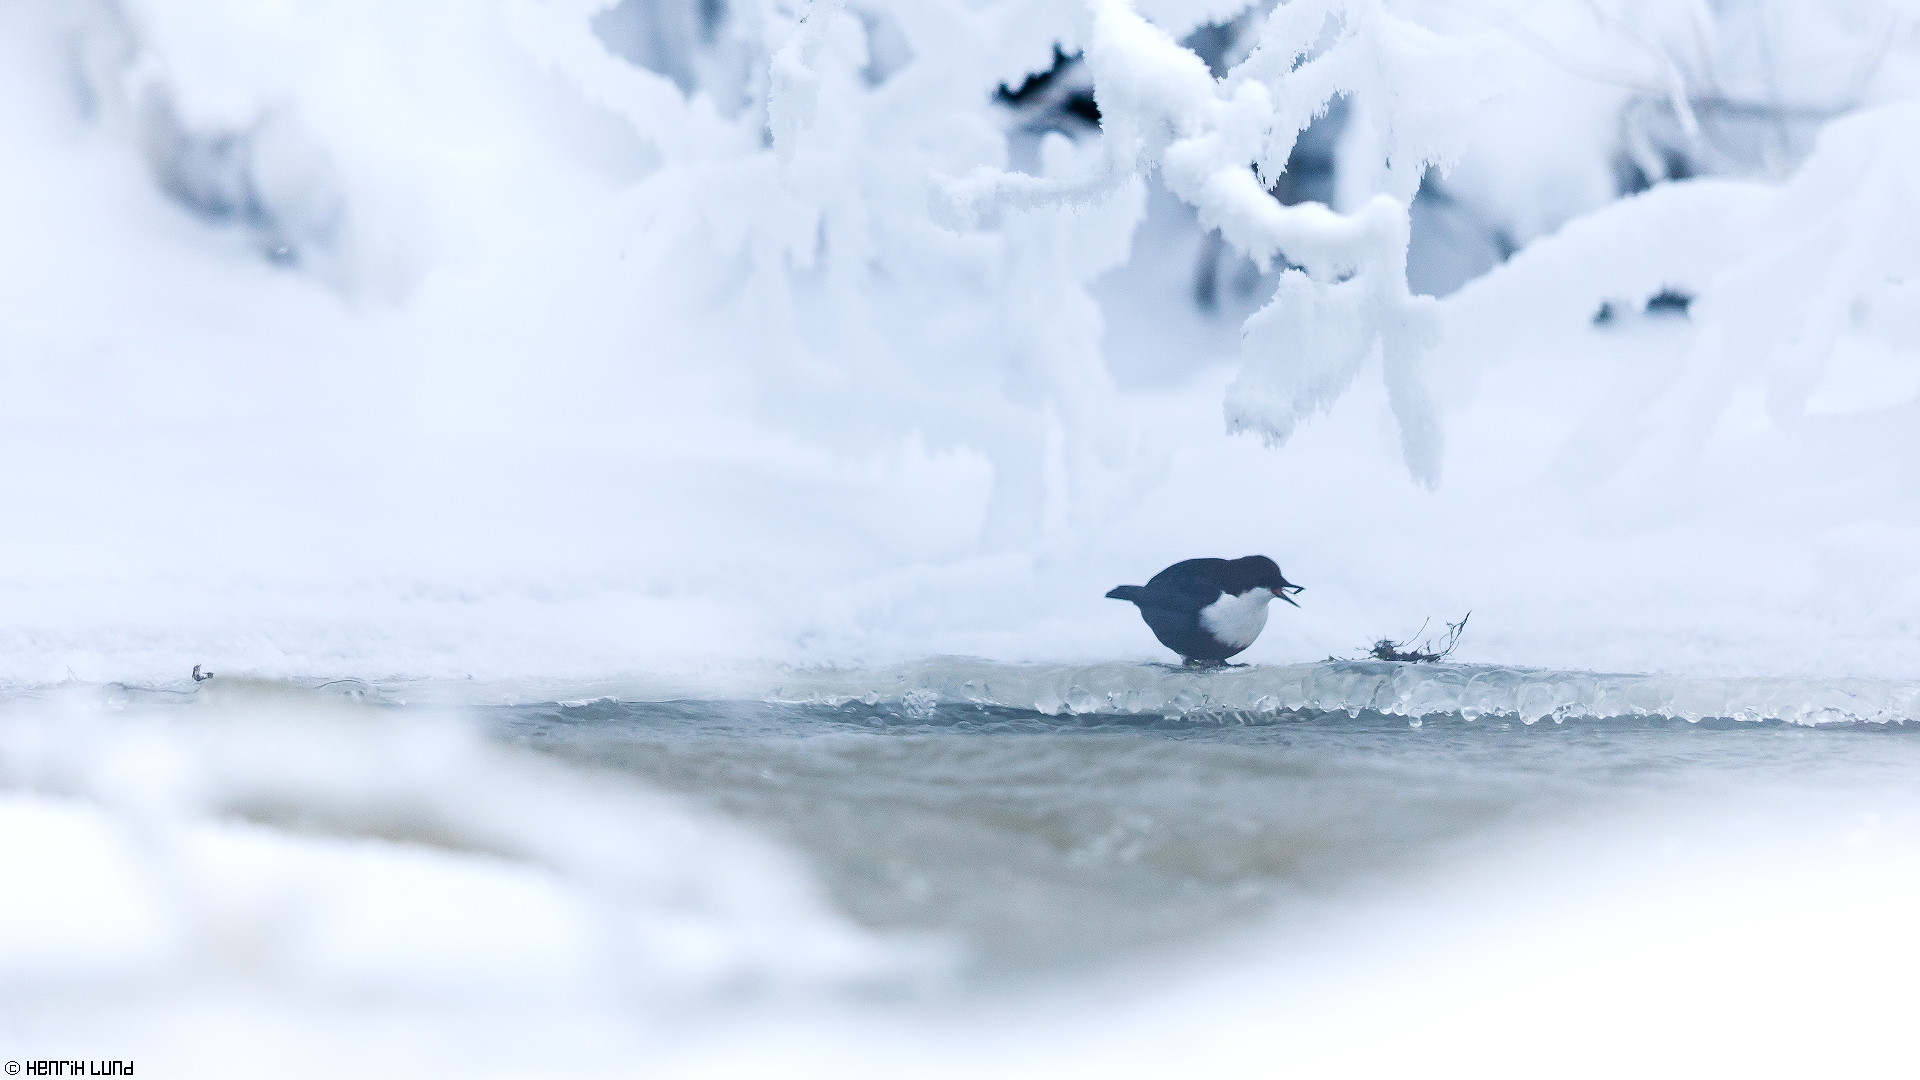 White-throated dipper finding some goodies from the rapids. Porlom, Lappträsk, Finland. January 2016.